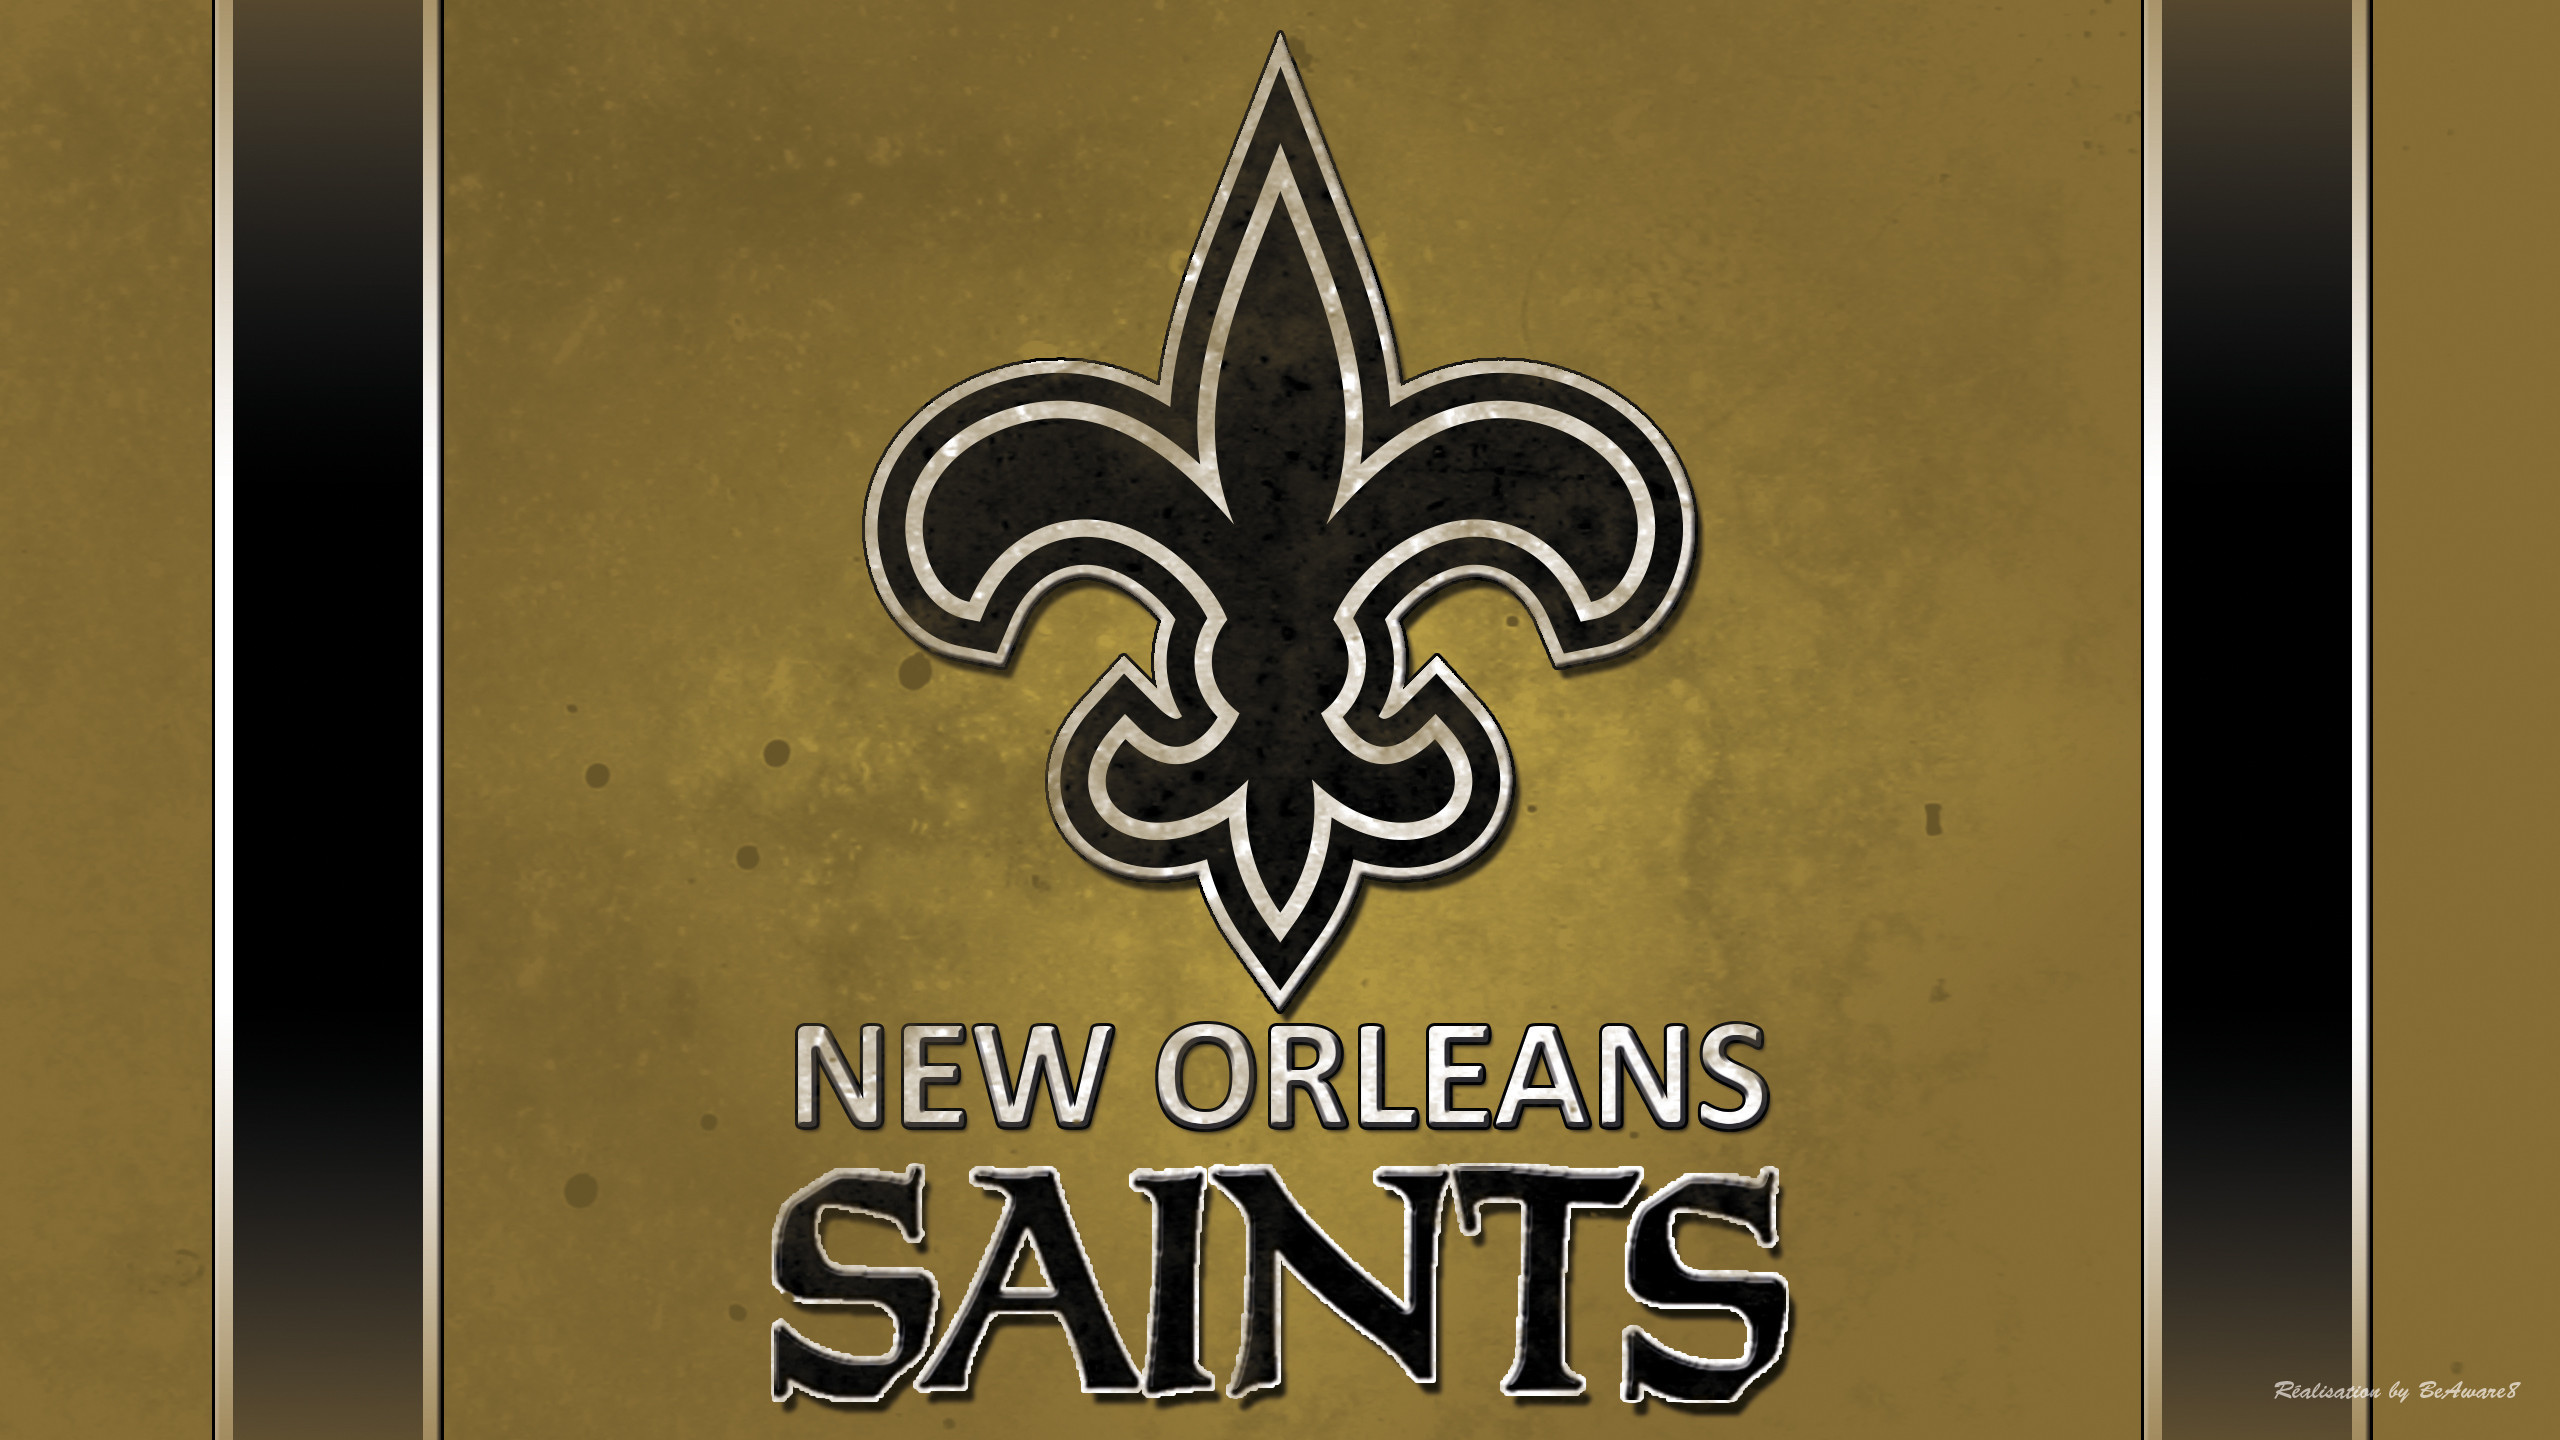 2560x1440 New Orleans Saints Wallpapers 2015 2560x1440